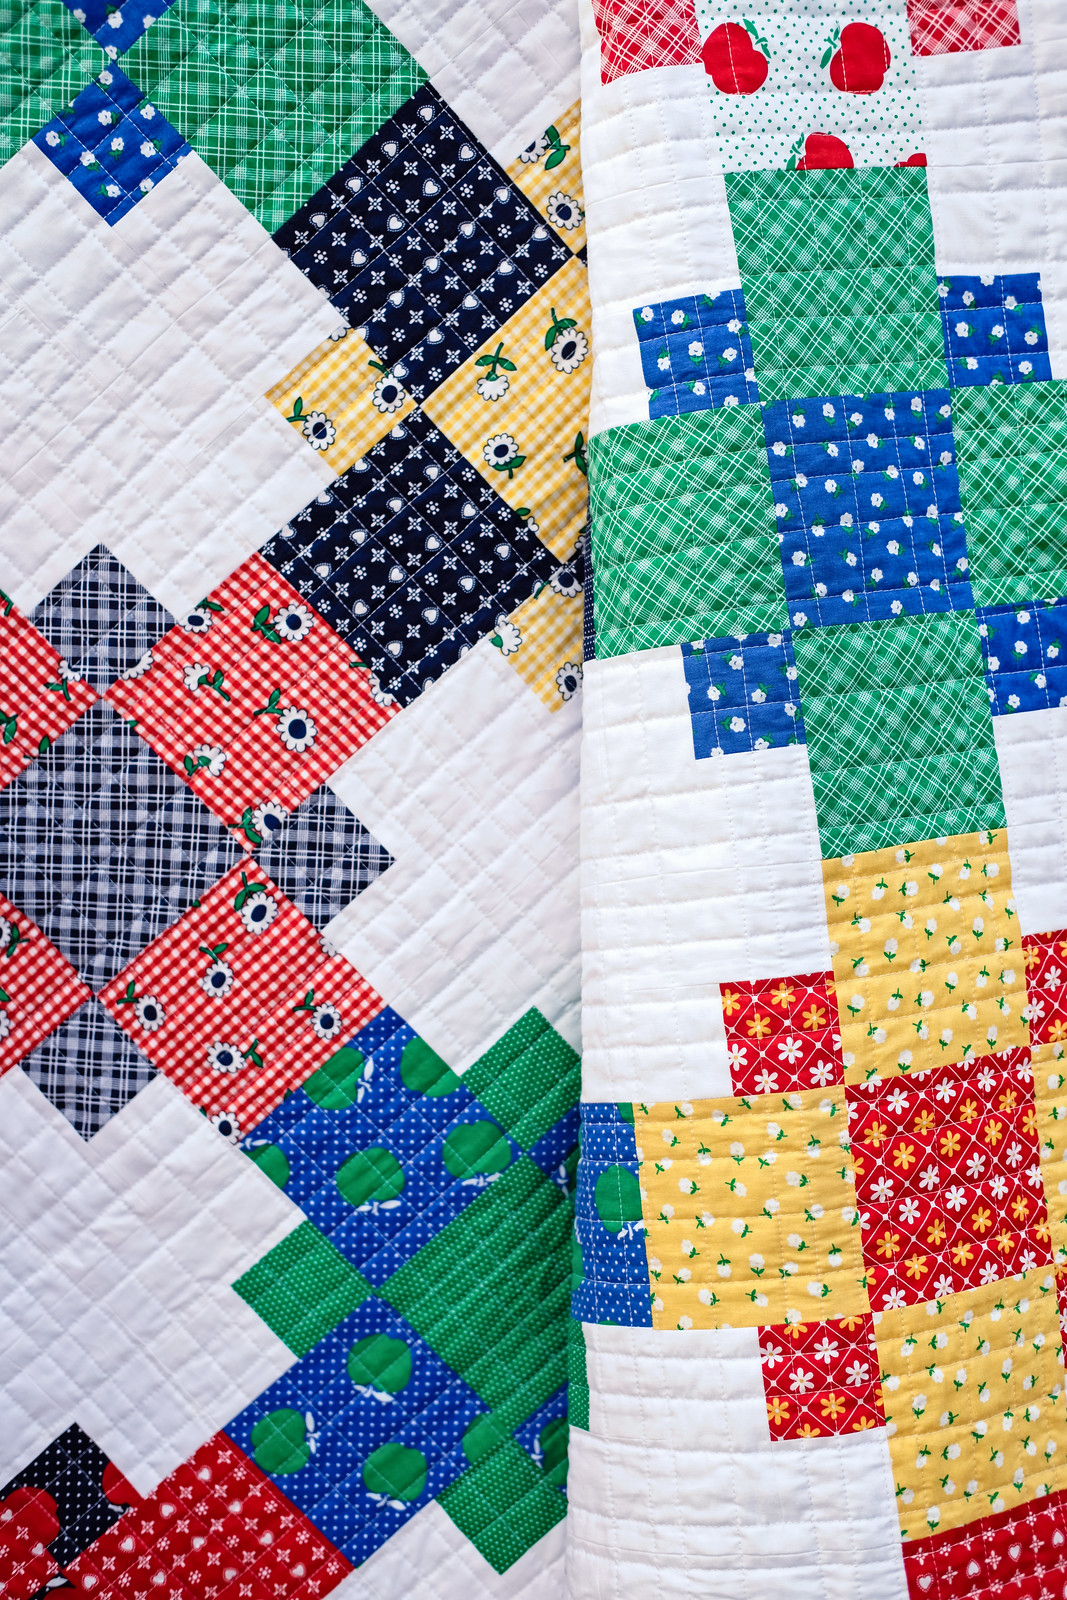 Sunnyside Ave Even-Steven Quilt - Kitchen Table Quilting